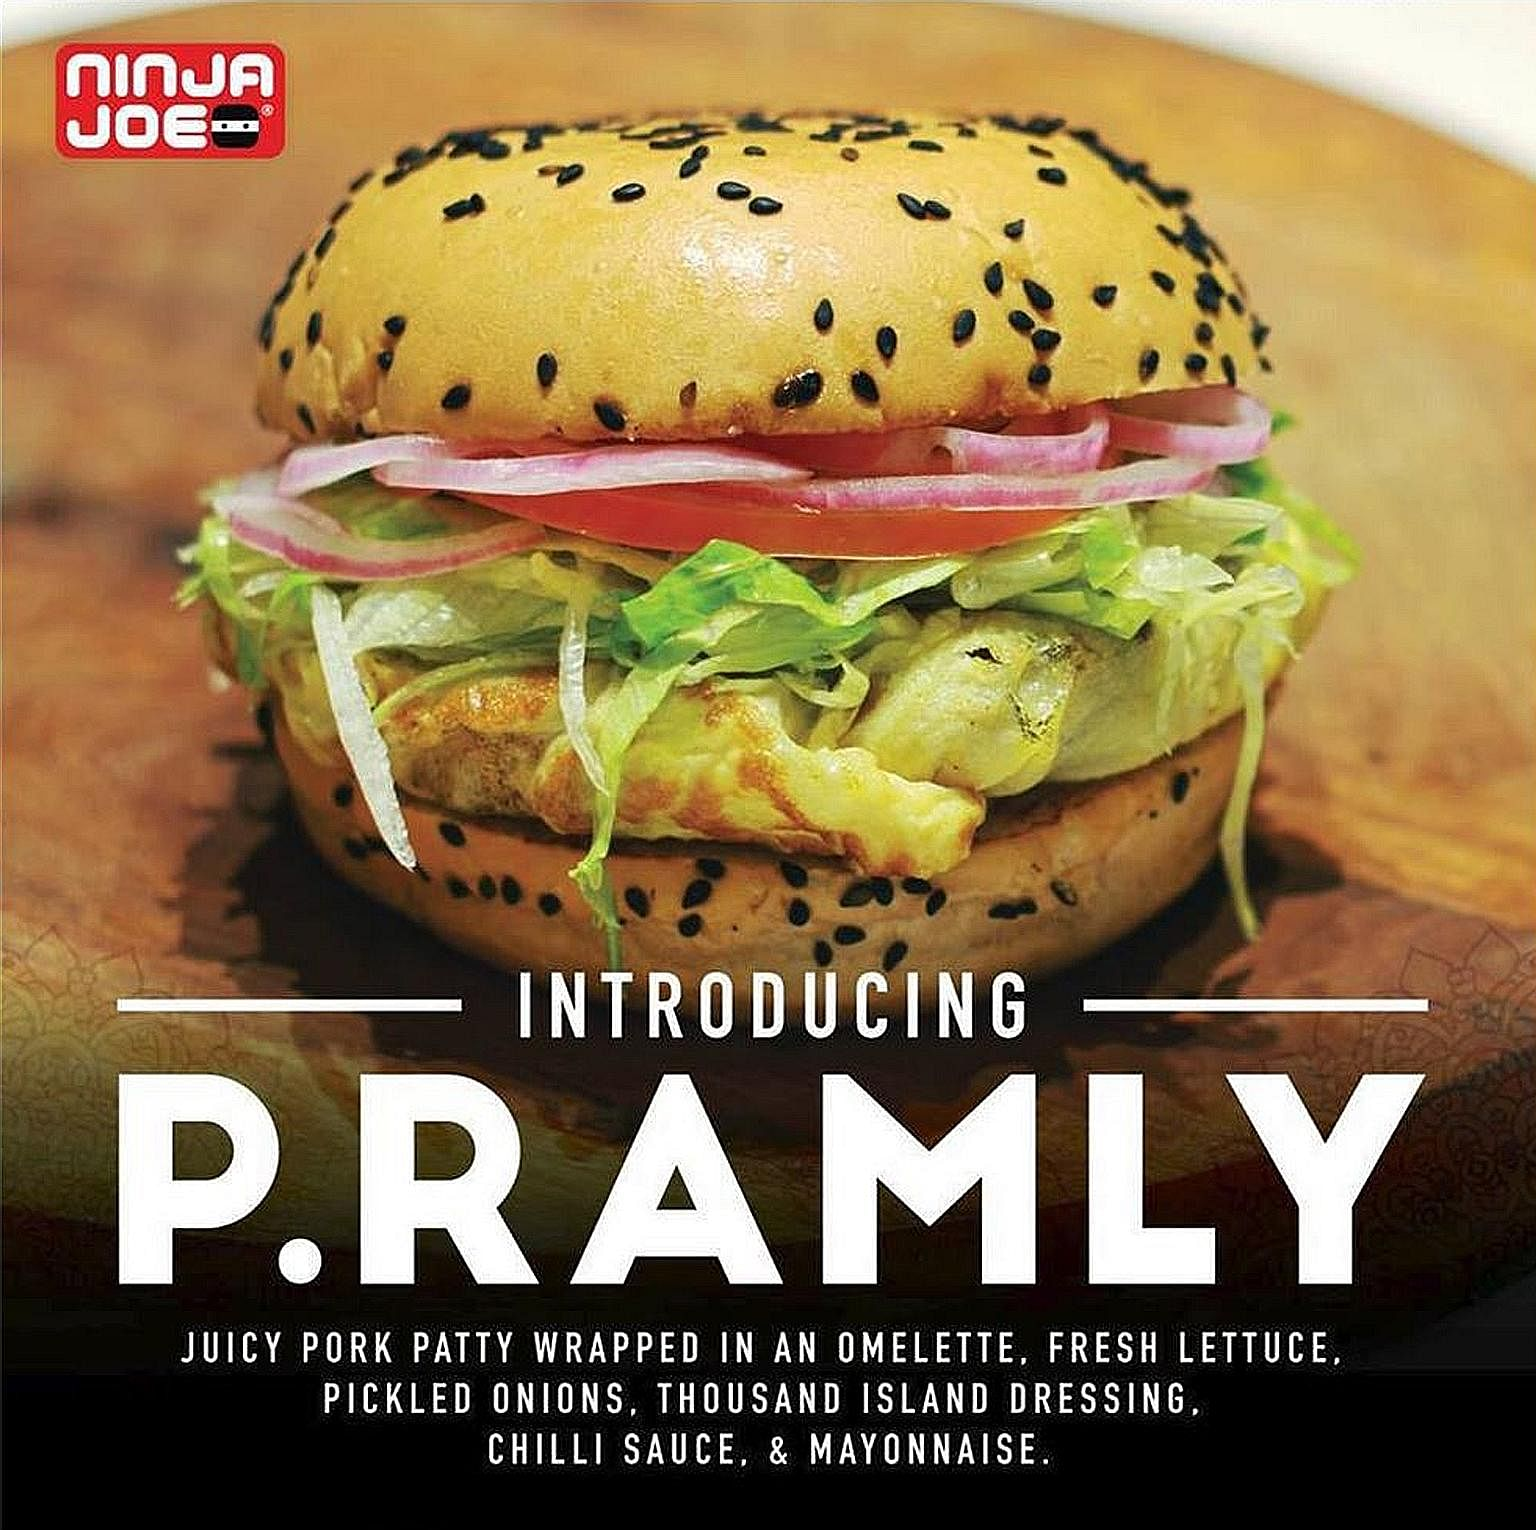 Ninja Joe said on its Facebook page that it has removed posters of the burger from its outlets and has ceased the use of the P. Ramly name with immediate effect.